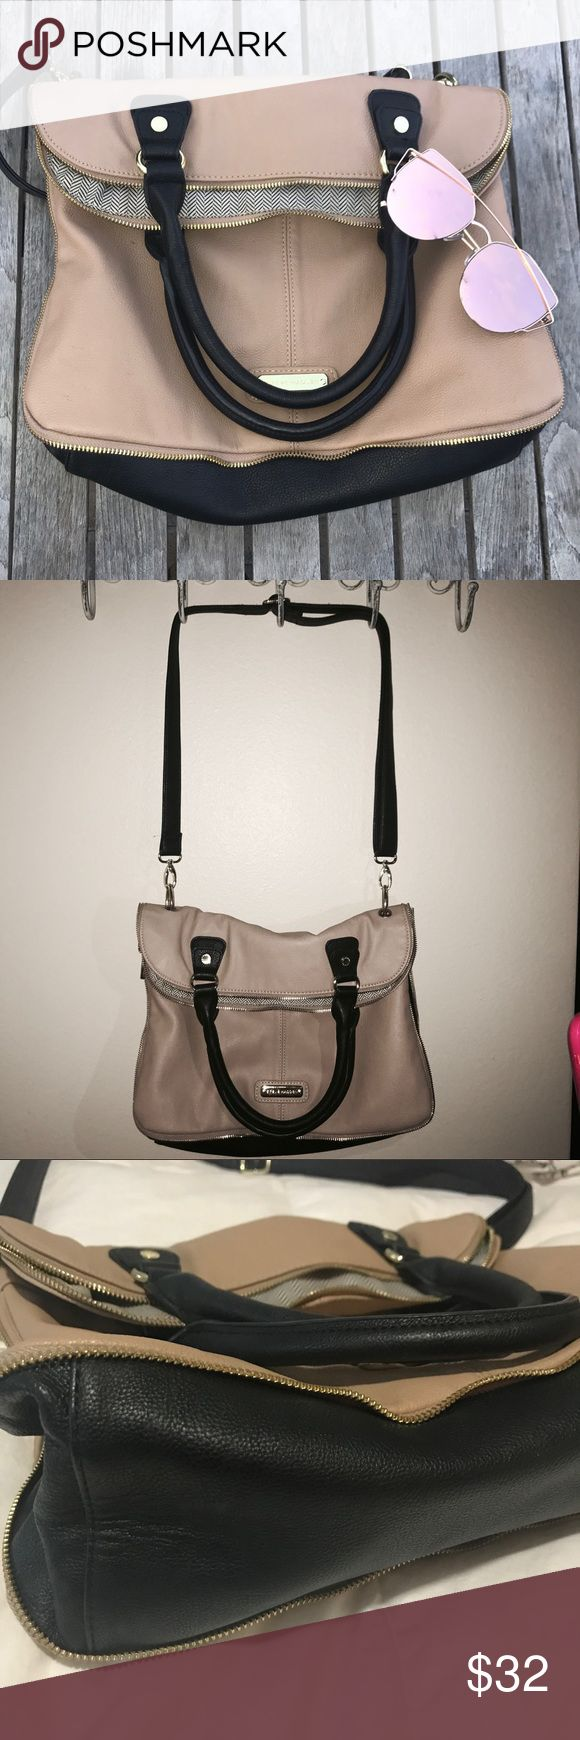 Steve Madden nude and black bag Authentic Steve Madden Nude and Black purse. Expandable bottom zipper to create more space in the bag. In excellent condition. One mark on the back of the bag located on the neon yellow accent pocket. See photos. Steve Madden Bags Shoulder Bags